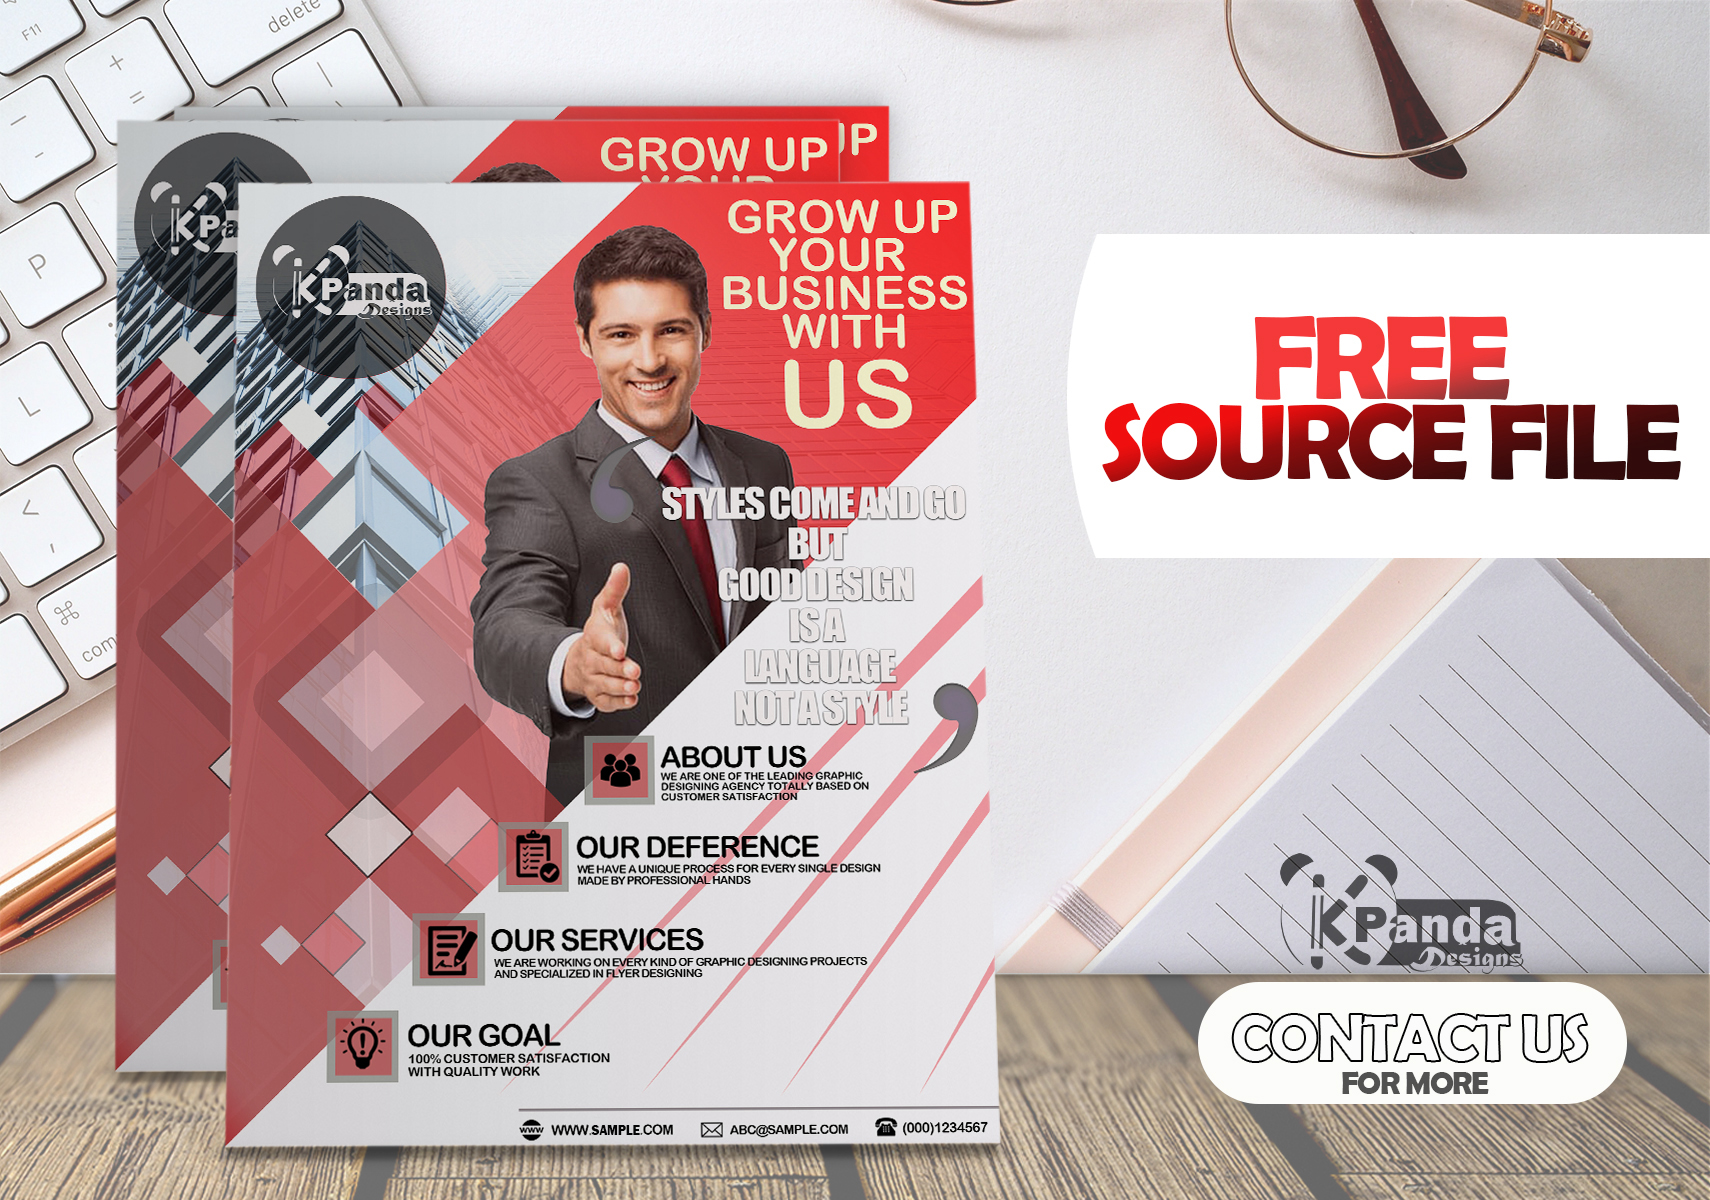 Attractive,  Professional flyer design for your business